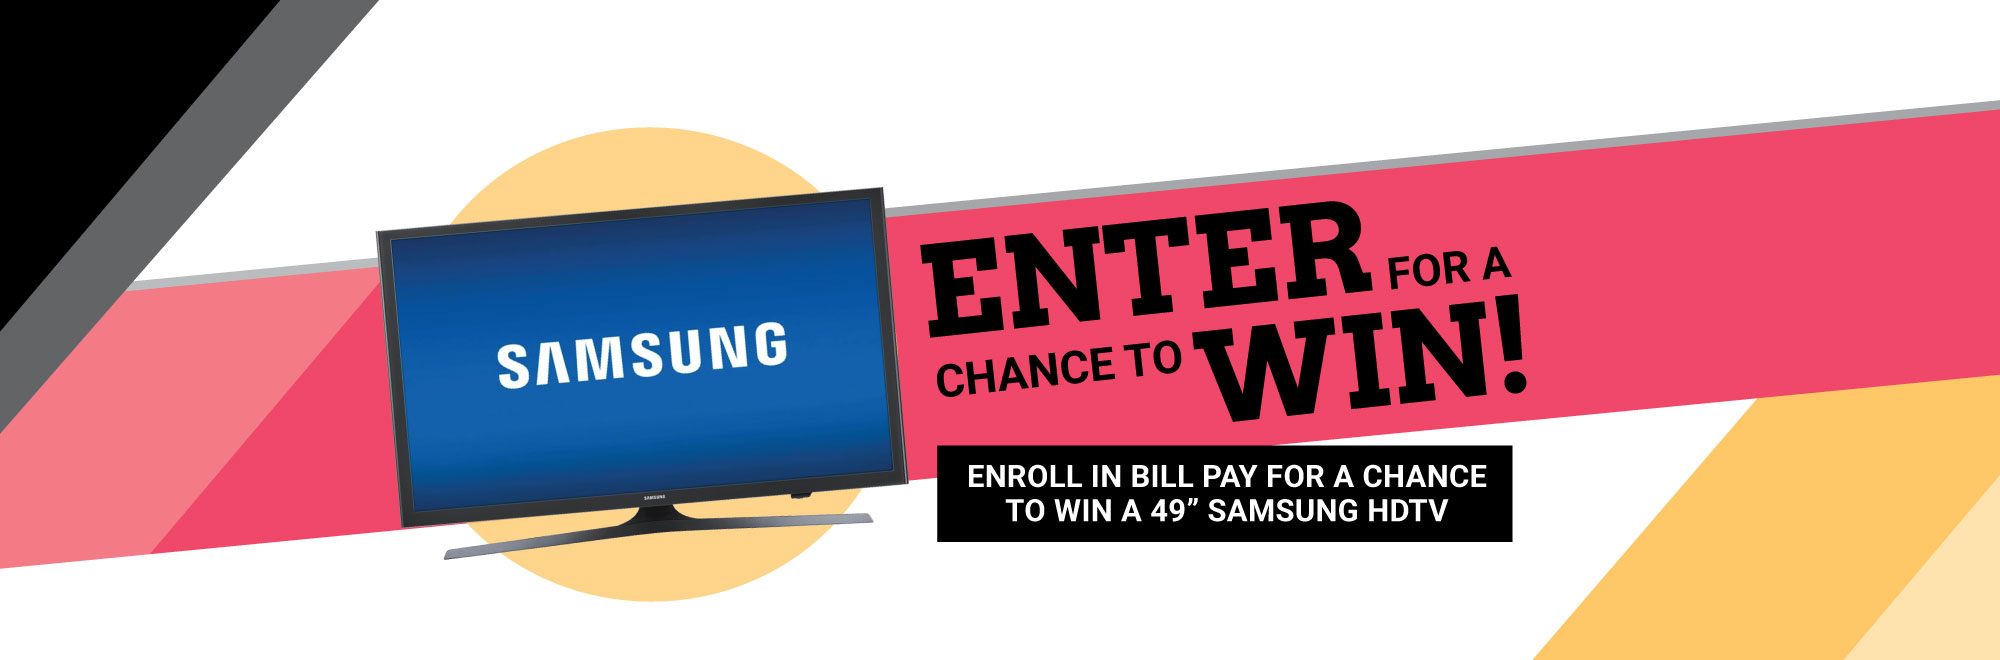 Enter for a chance to win a Samsung TV